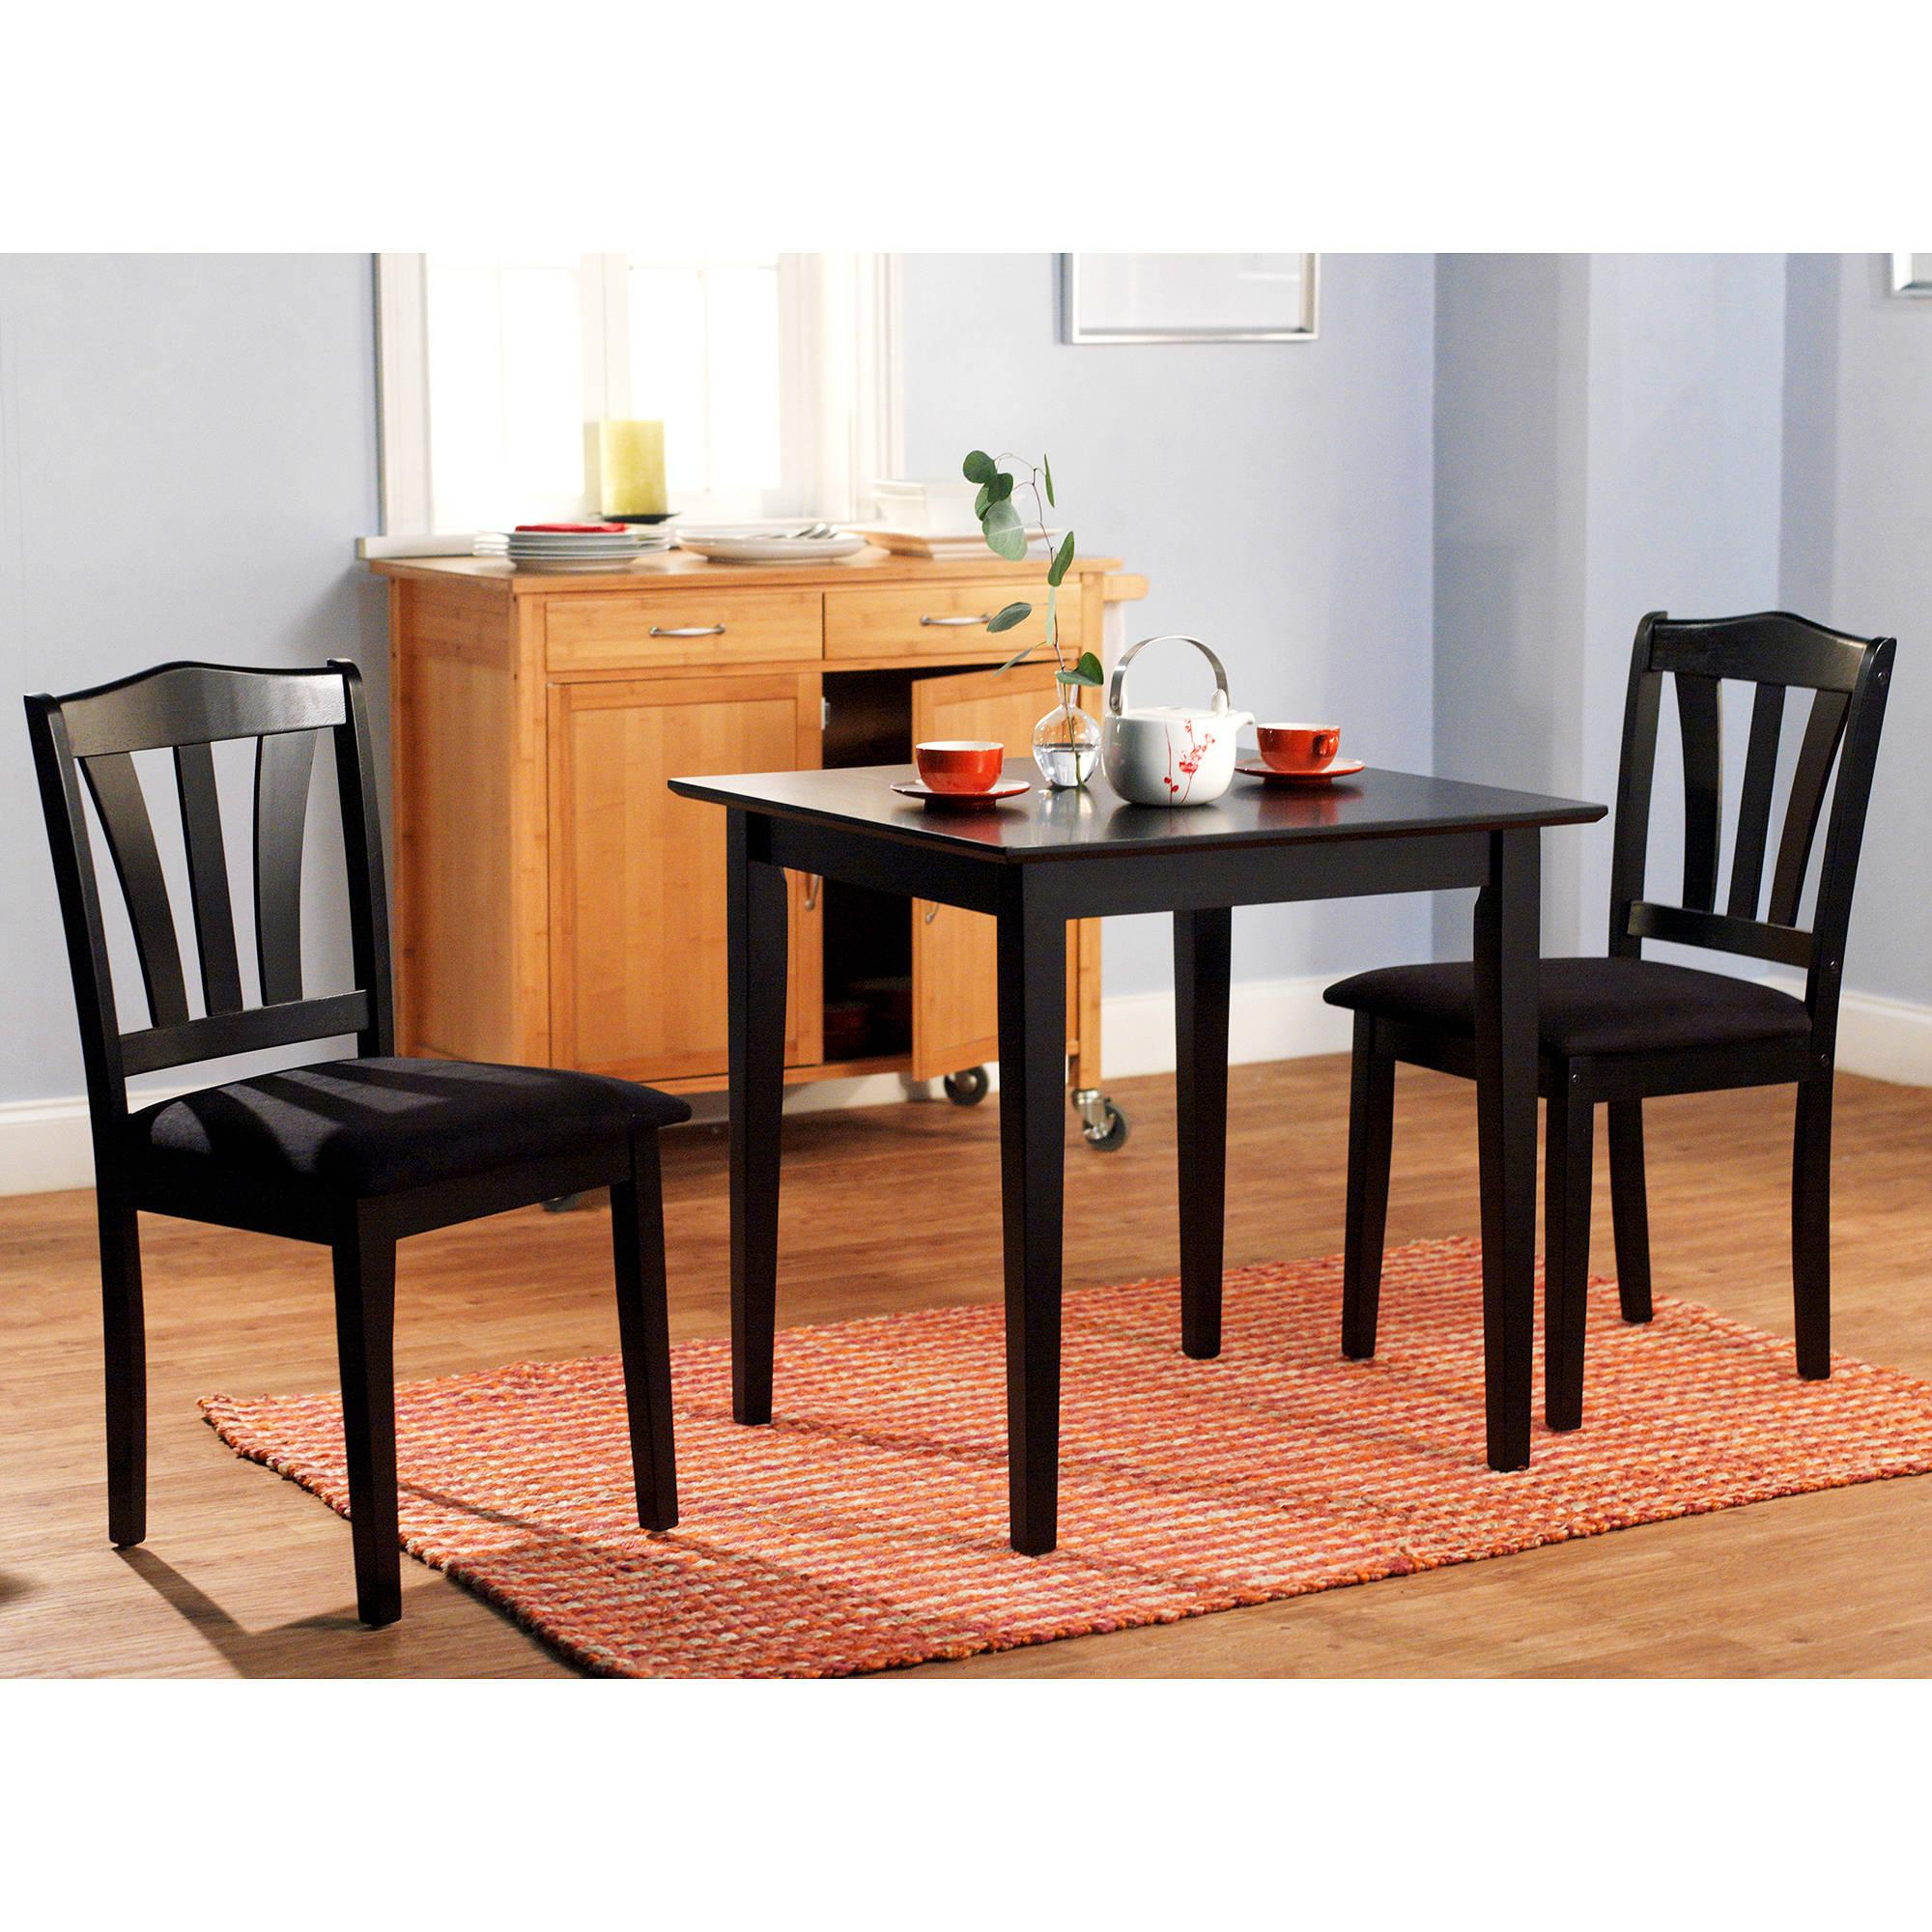 3 Pieces Dining Tables And Chair Set within Preferred Details About 3 Piece Dining Set Table 2 Chairs Kitchen Room Wood Furniture  Dinette Modern New